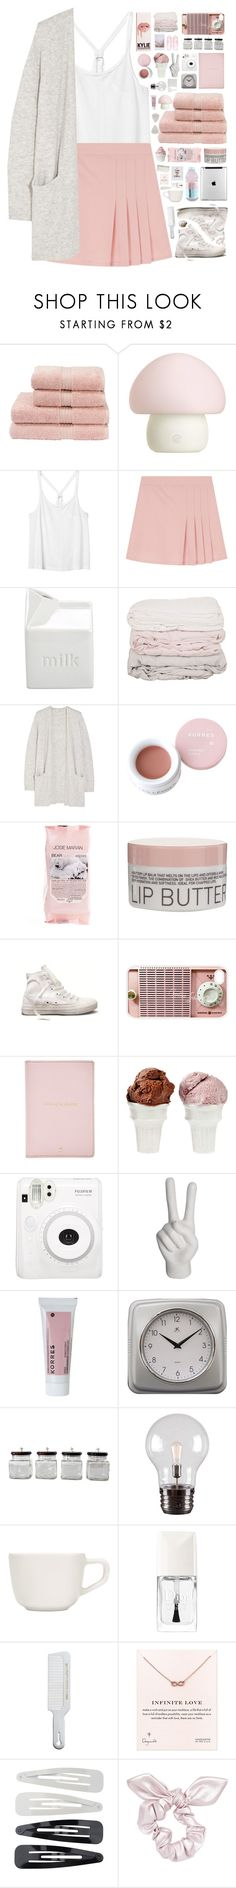 """""""you're not stupid, you're smart! - collab with @amazing-abby"""" by via-m ❤ liked on Polyvore featuring Christy, Emoi, Monki, BIA Cordon Bleu, Disney, Madewell, Korres, Josie Maran, Converse and Samsung"""